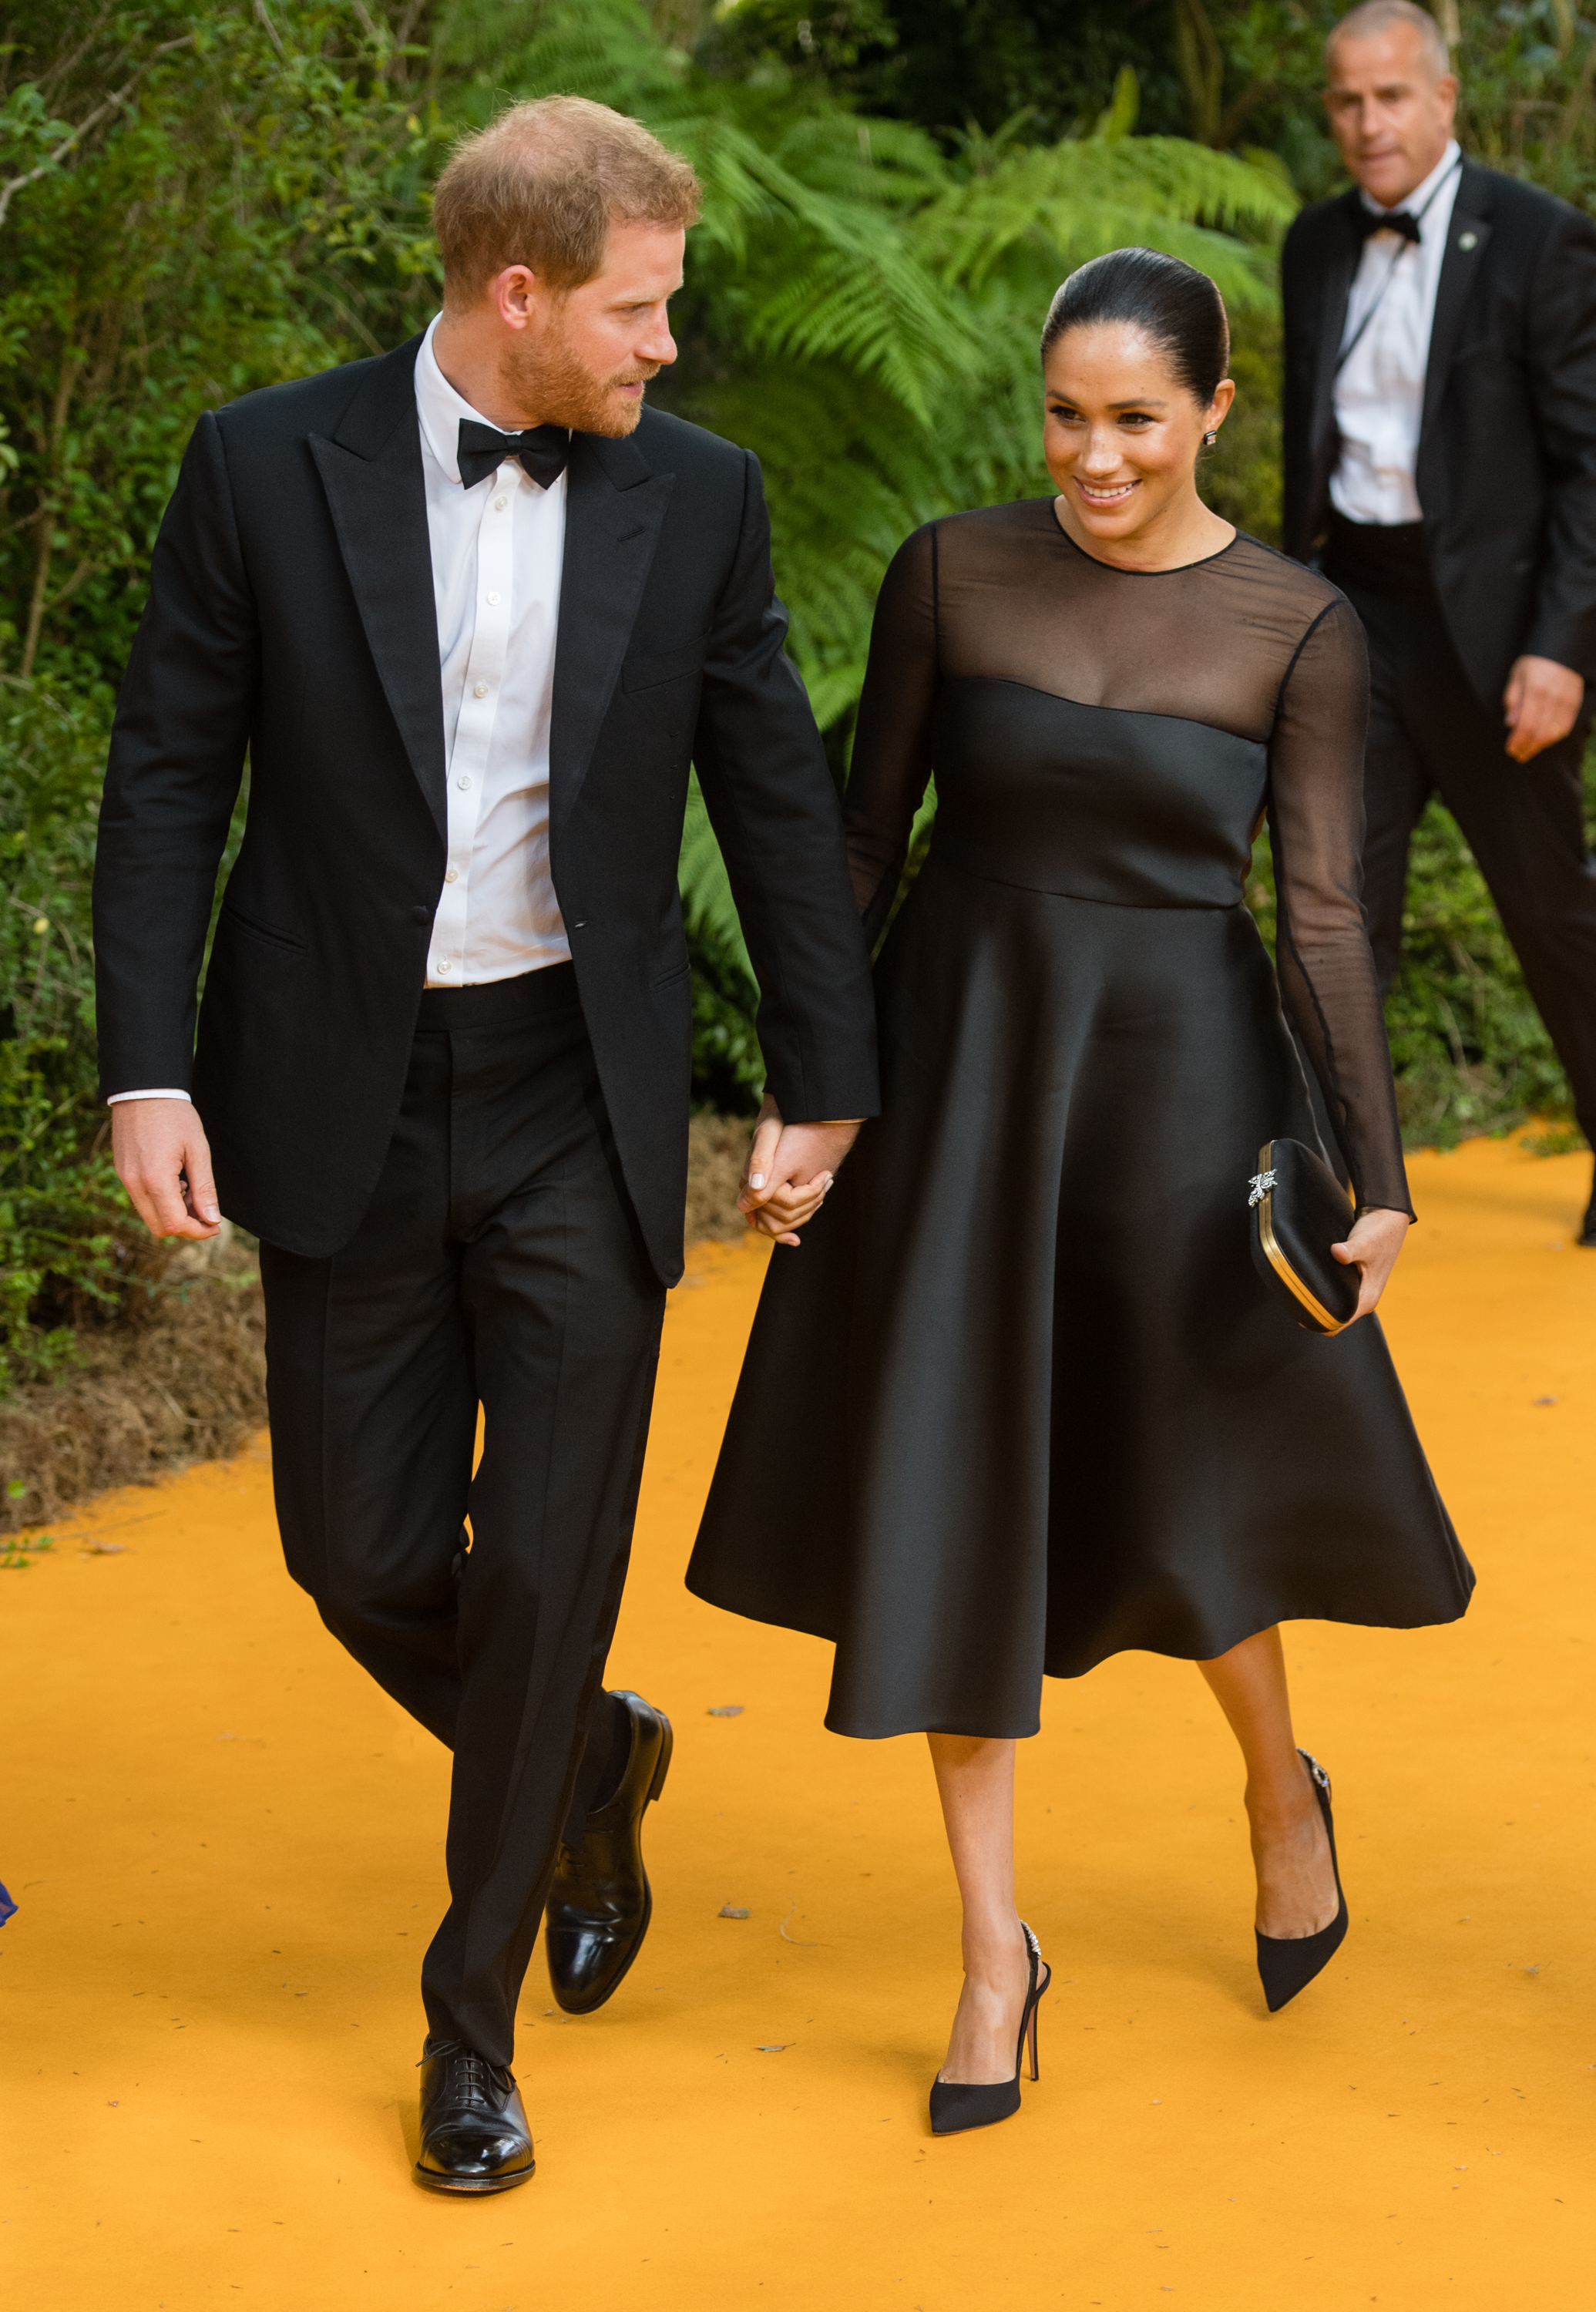 """LONDON, ENGLAND - JULY 14: Prince Harry, Duke of Sussex and Meghan, Duchess of Sussex attend """"The Lion King"""" European Premiere at Leicester Square on July 14, 2019 in London, England. (Photo by Samir Hussein/WireImage)"""